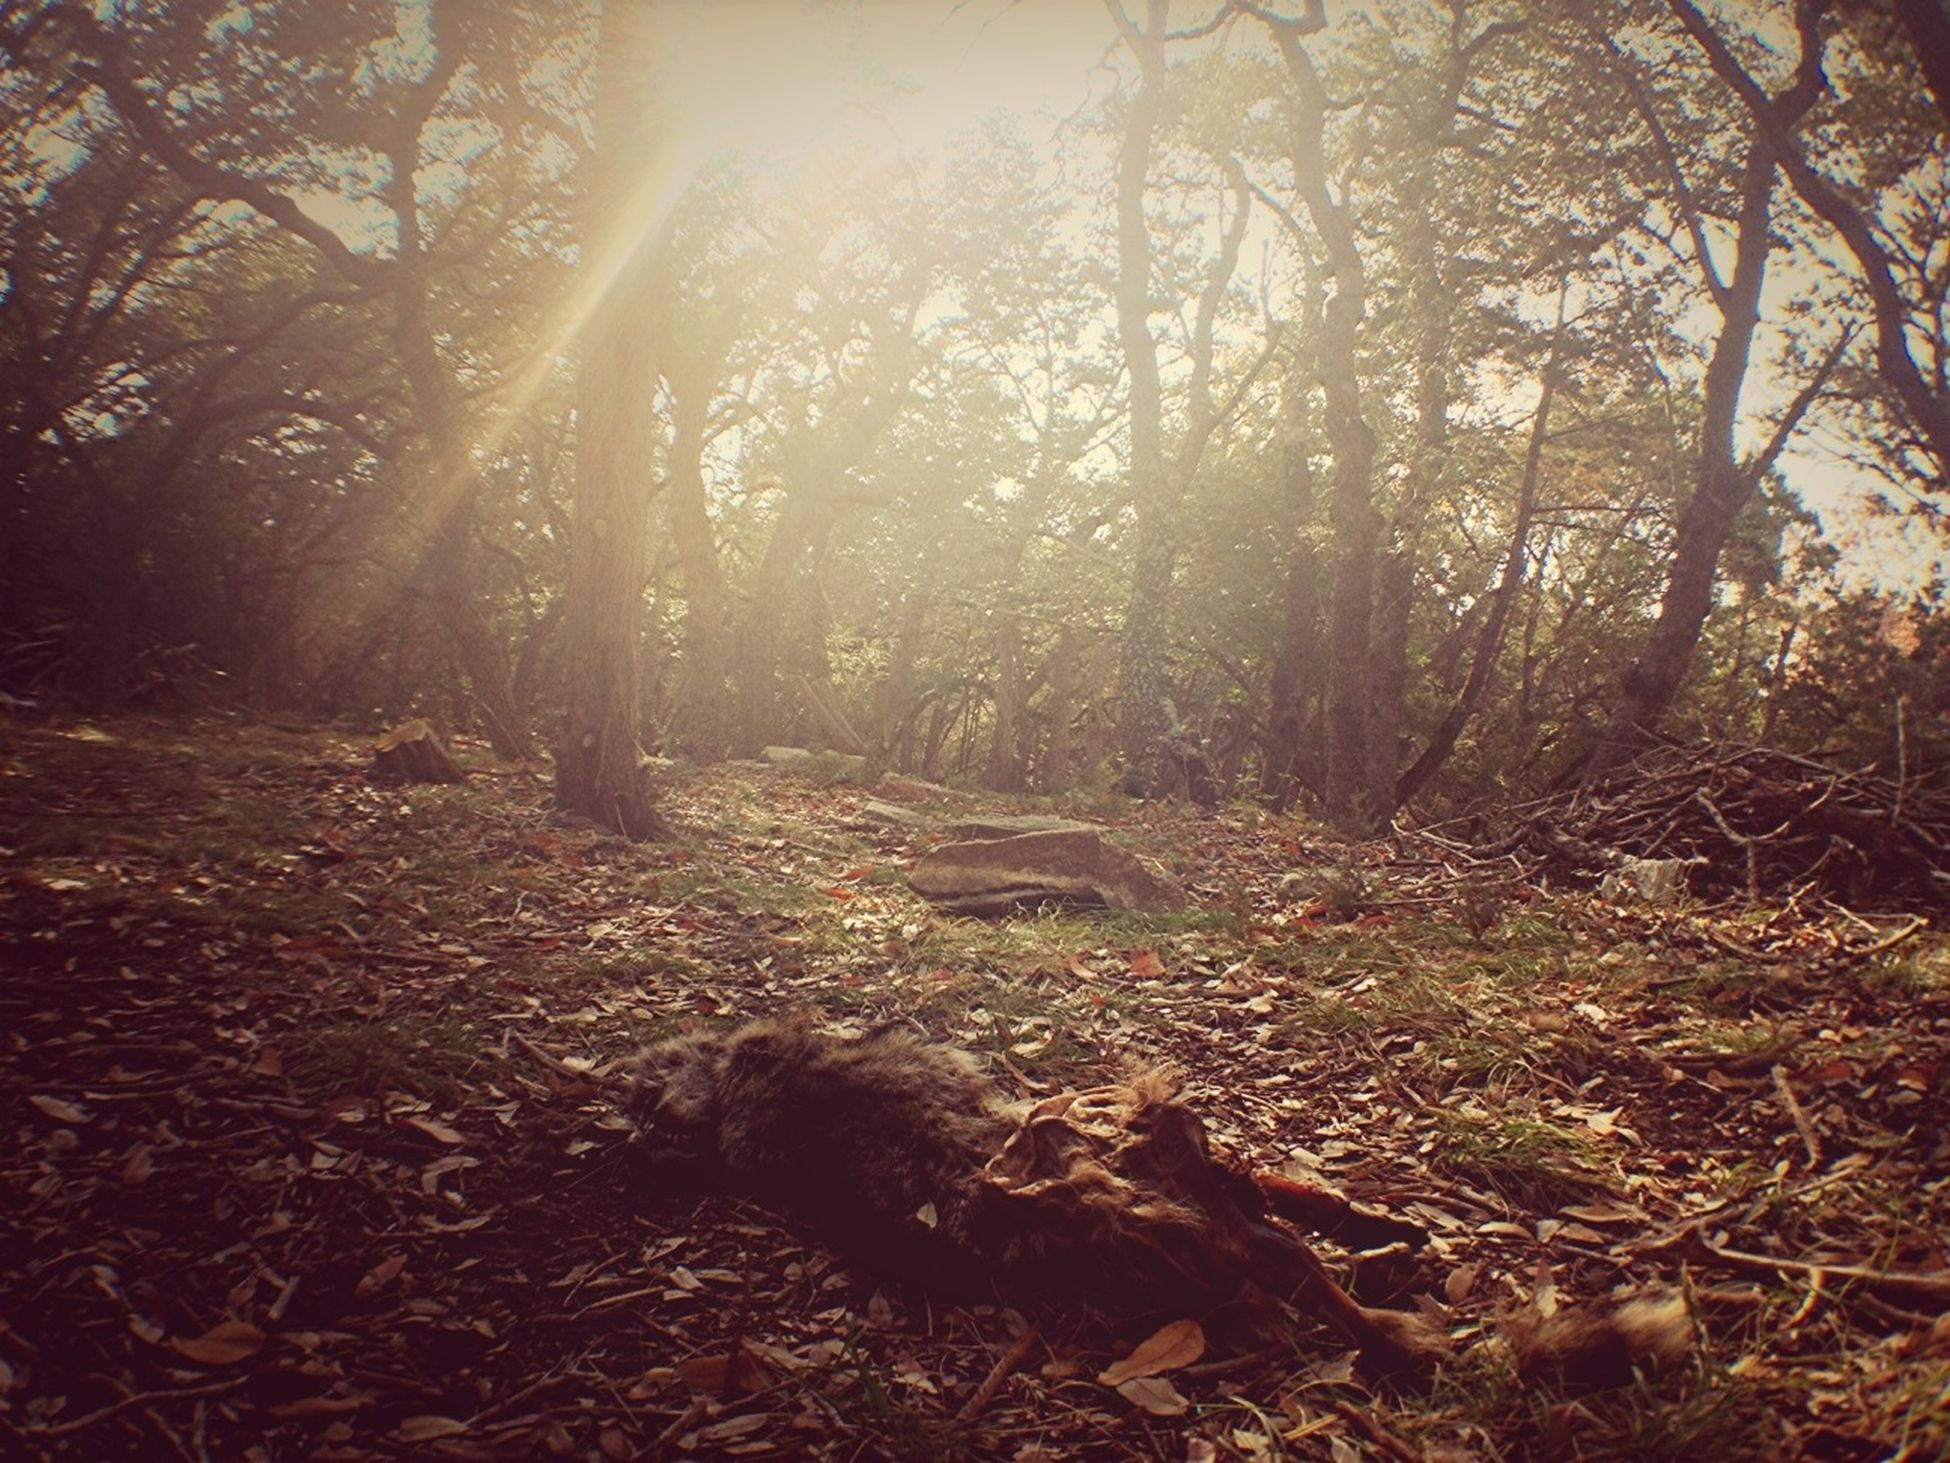 tree, forest, tranquility, tranquil scene, nature, tree trunk, sunlight, growth, woodland, beauty in nature, scenics, sunbeam, landscape, non-urban scene, branch, day, outdoors, the way forward, no people, dirt road